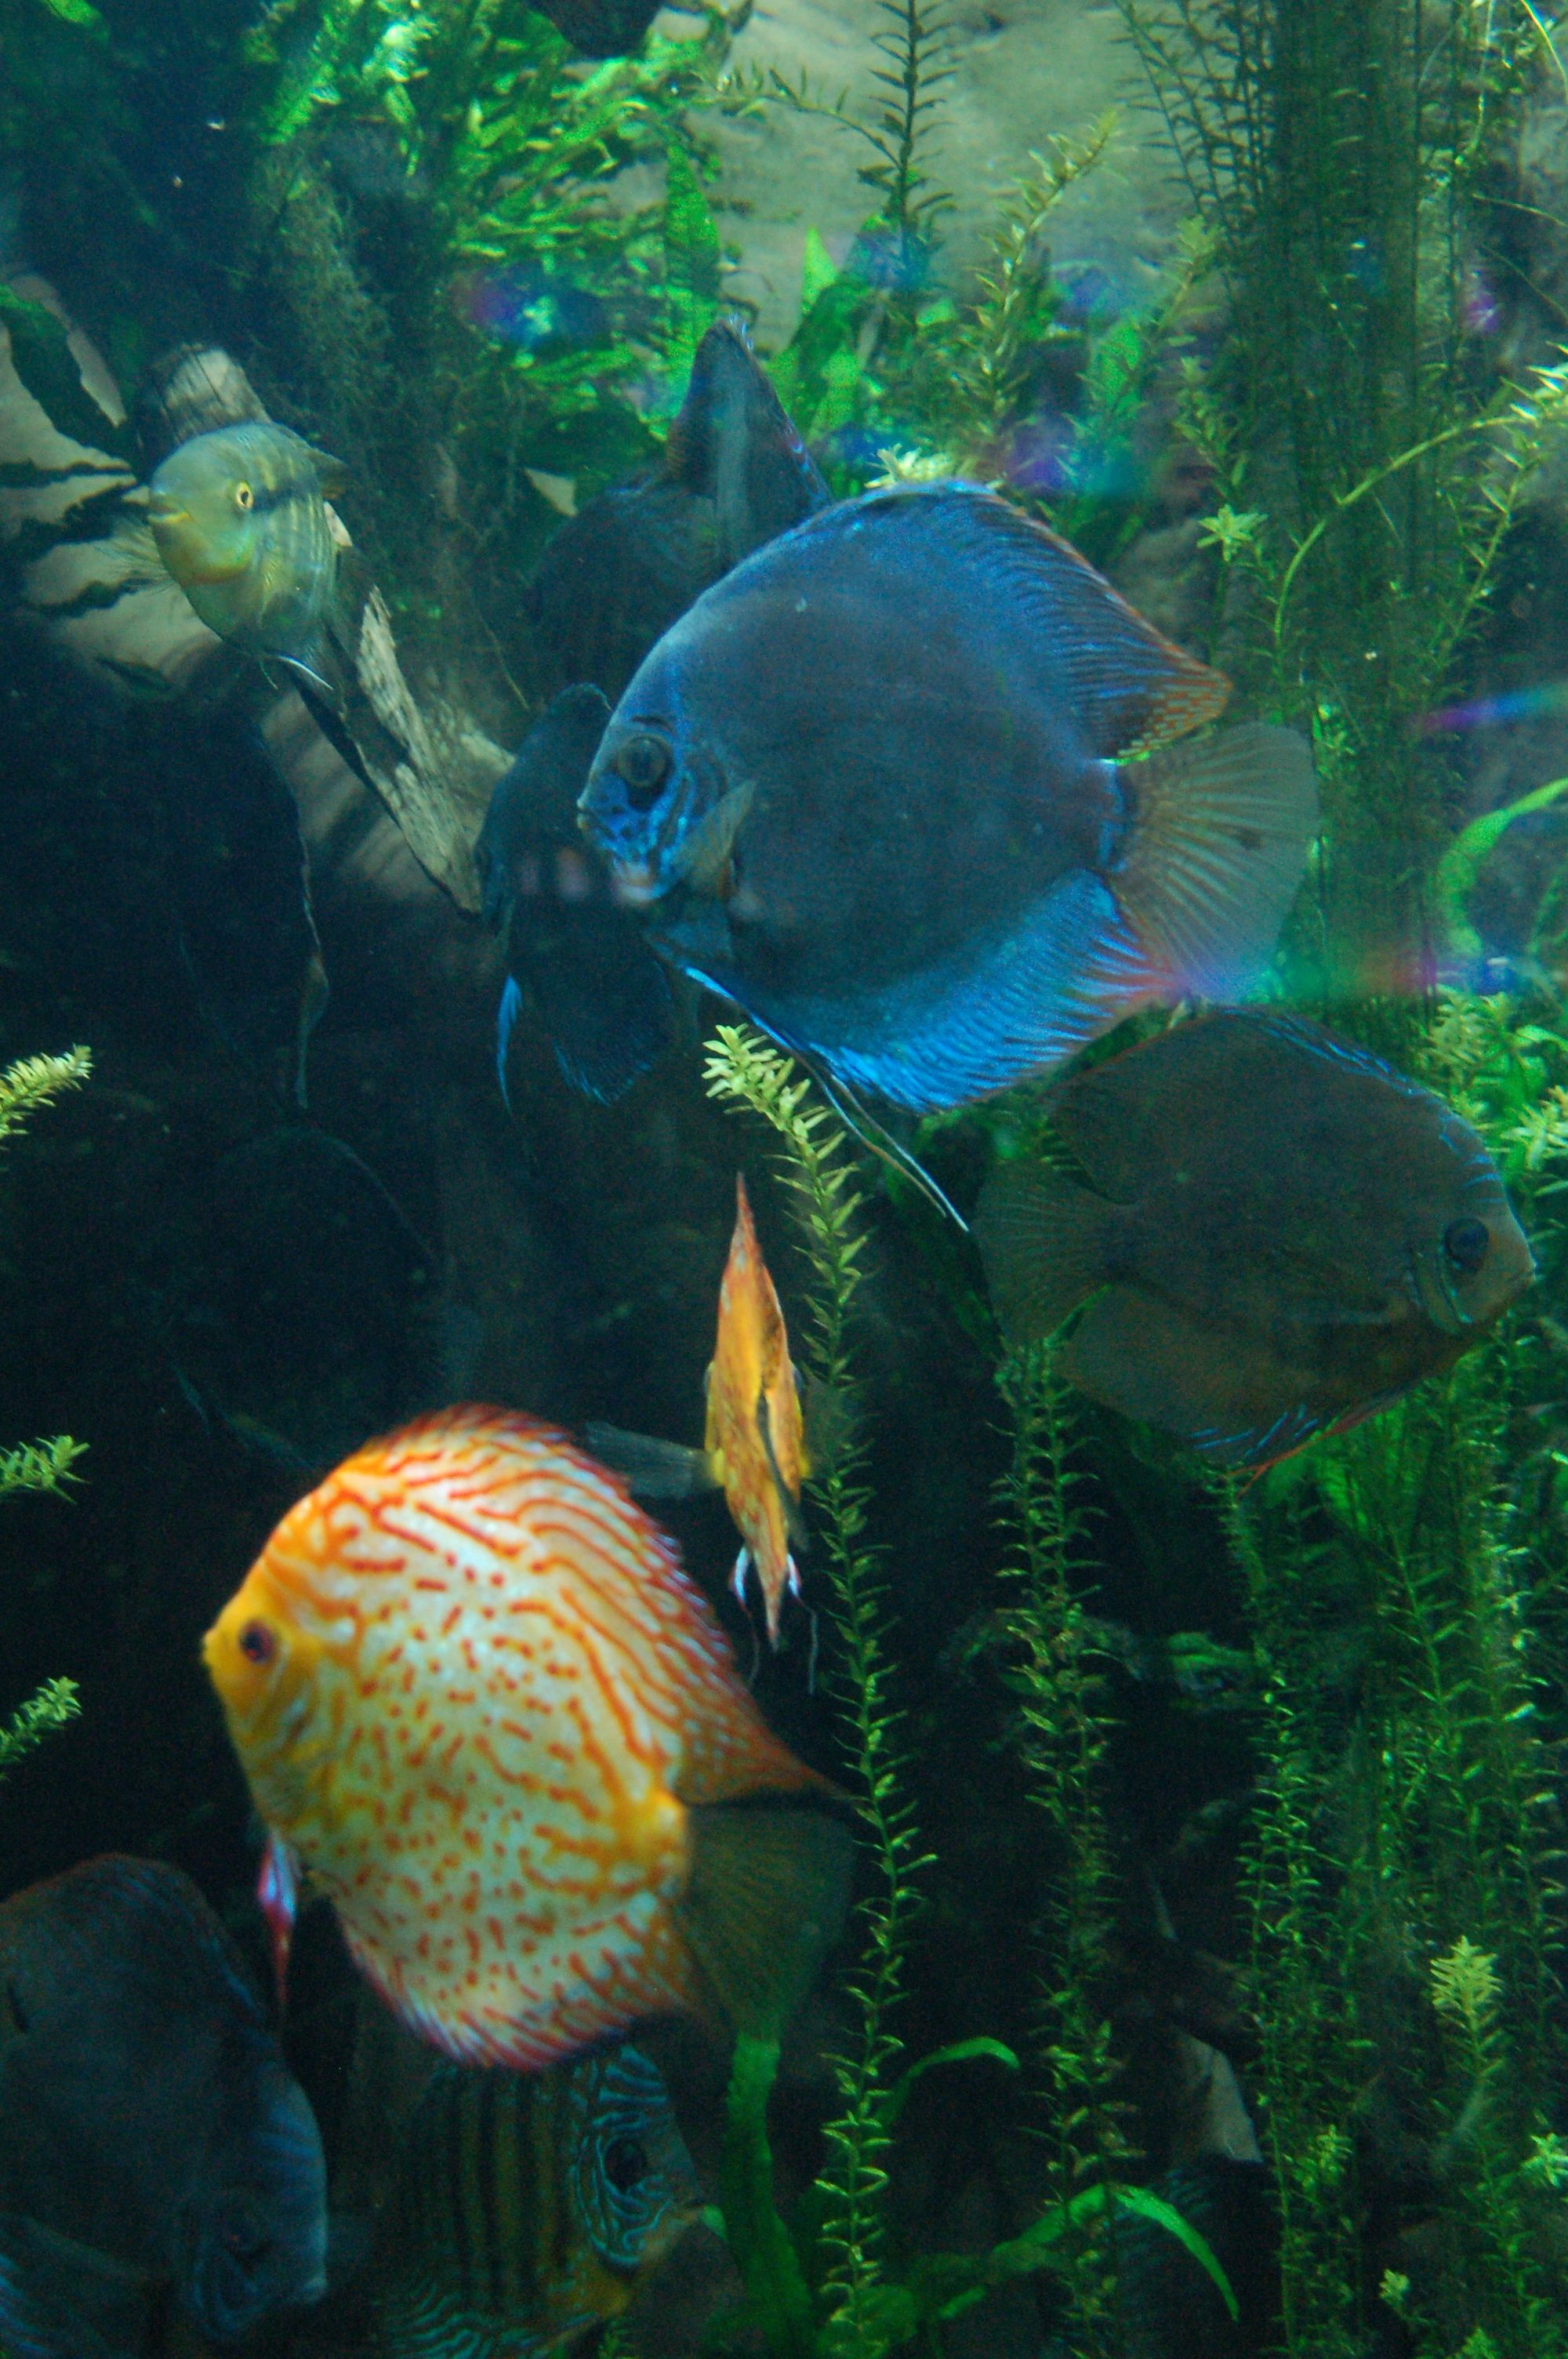 Discus fish which I want someday